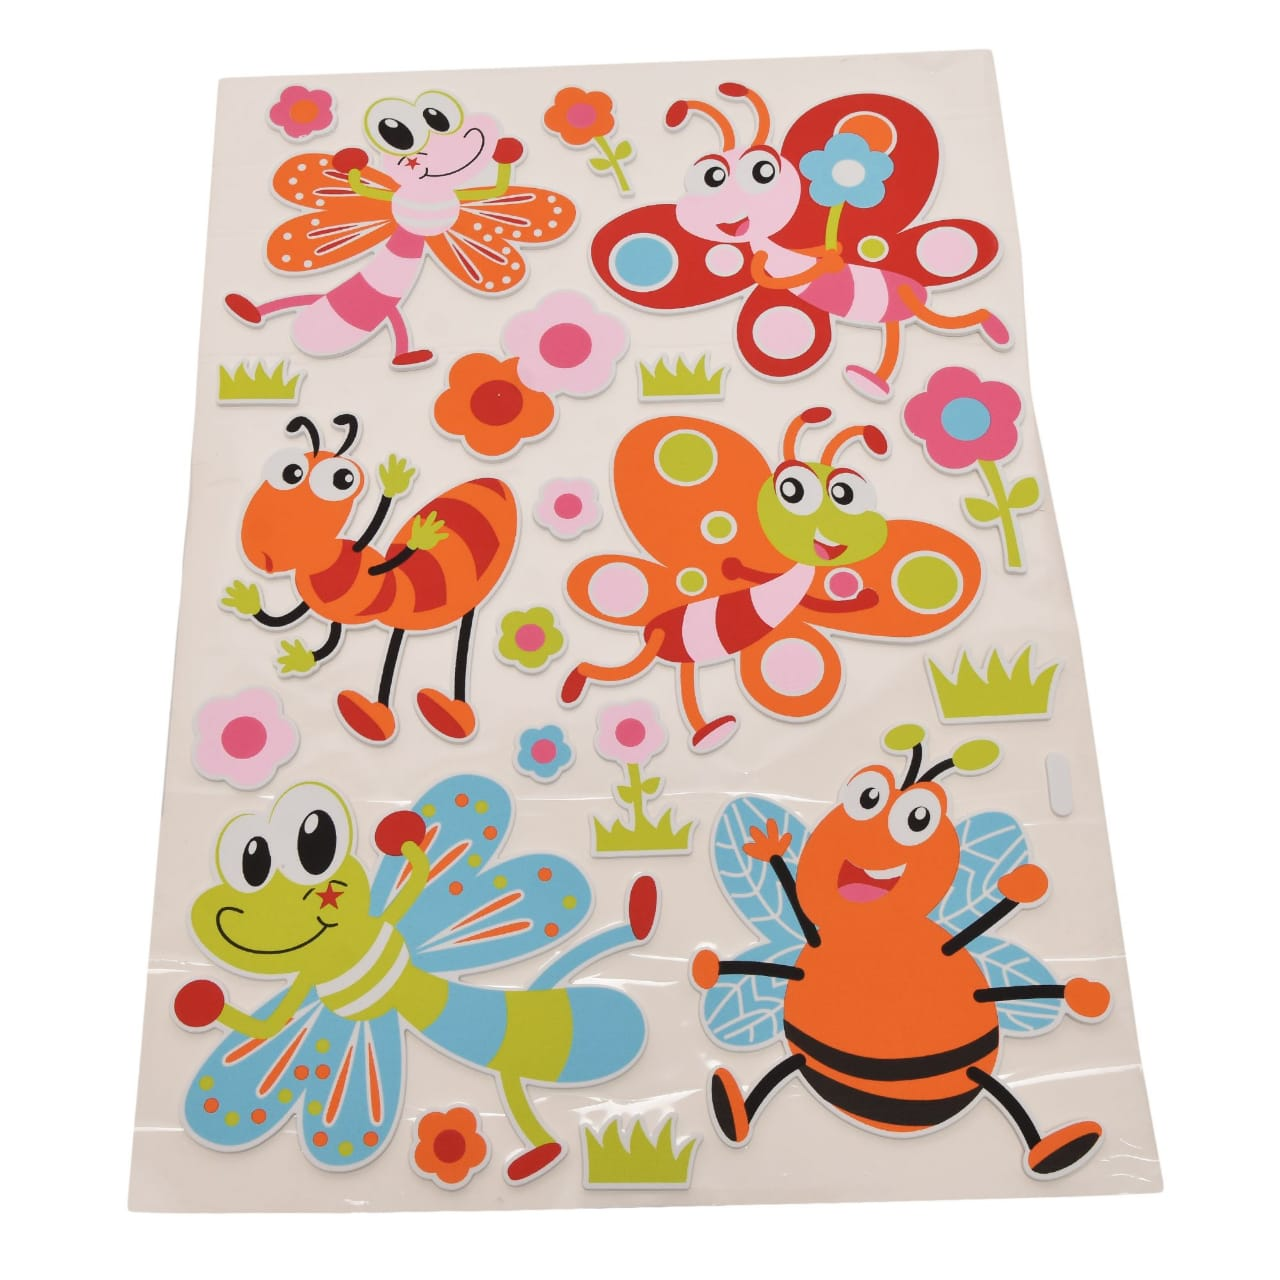 Insects Wall Decor Sicker